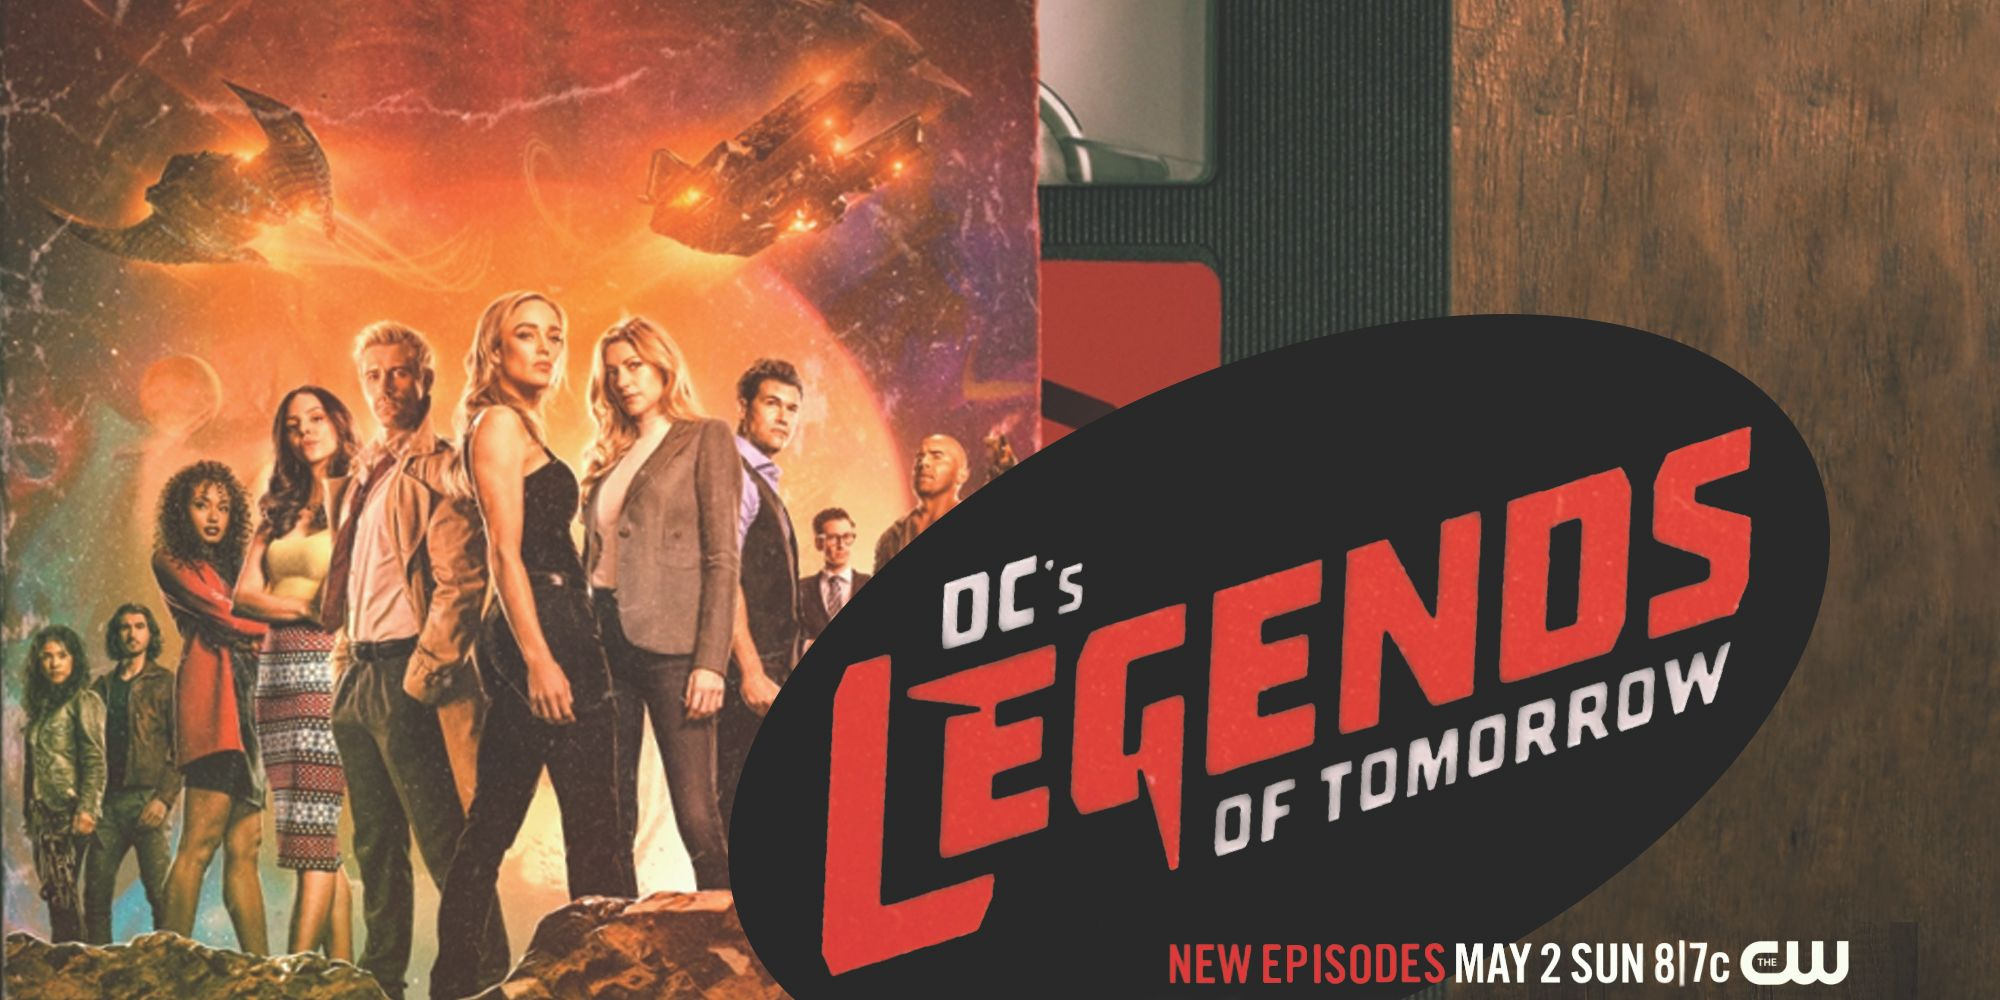 DC's Legends Of Tomorrow Season 6 Poster Showcases 90s Vibes